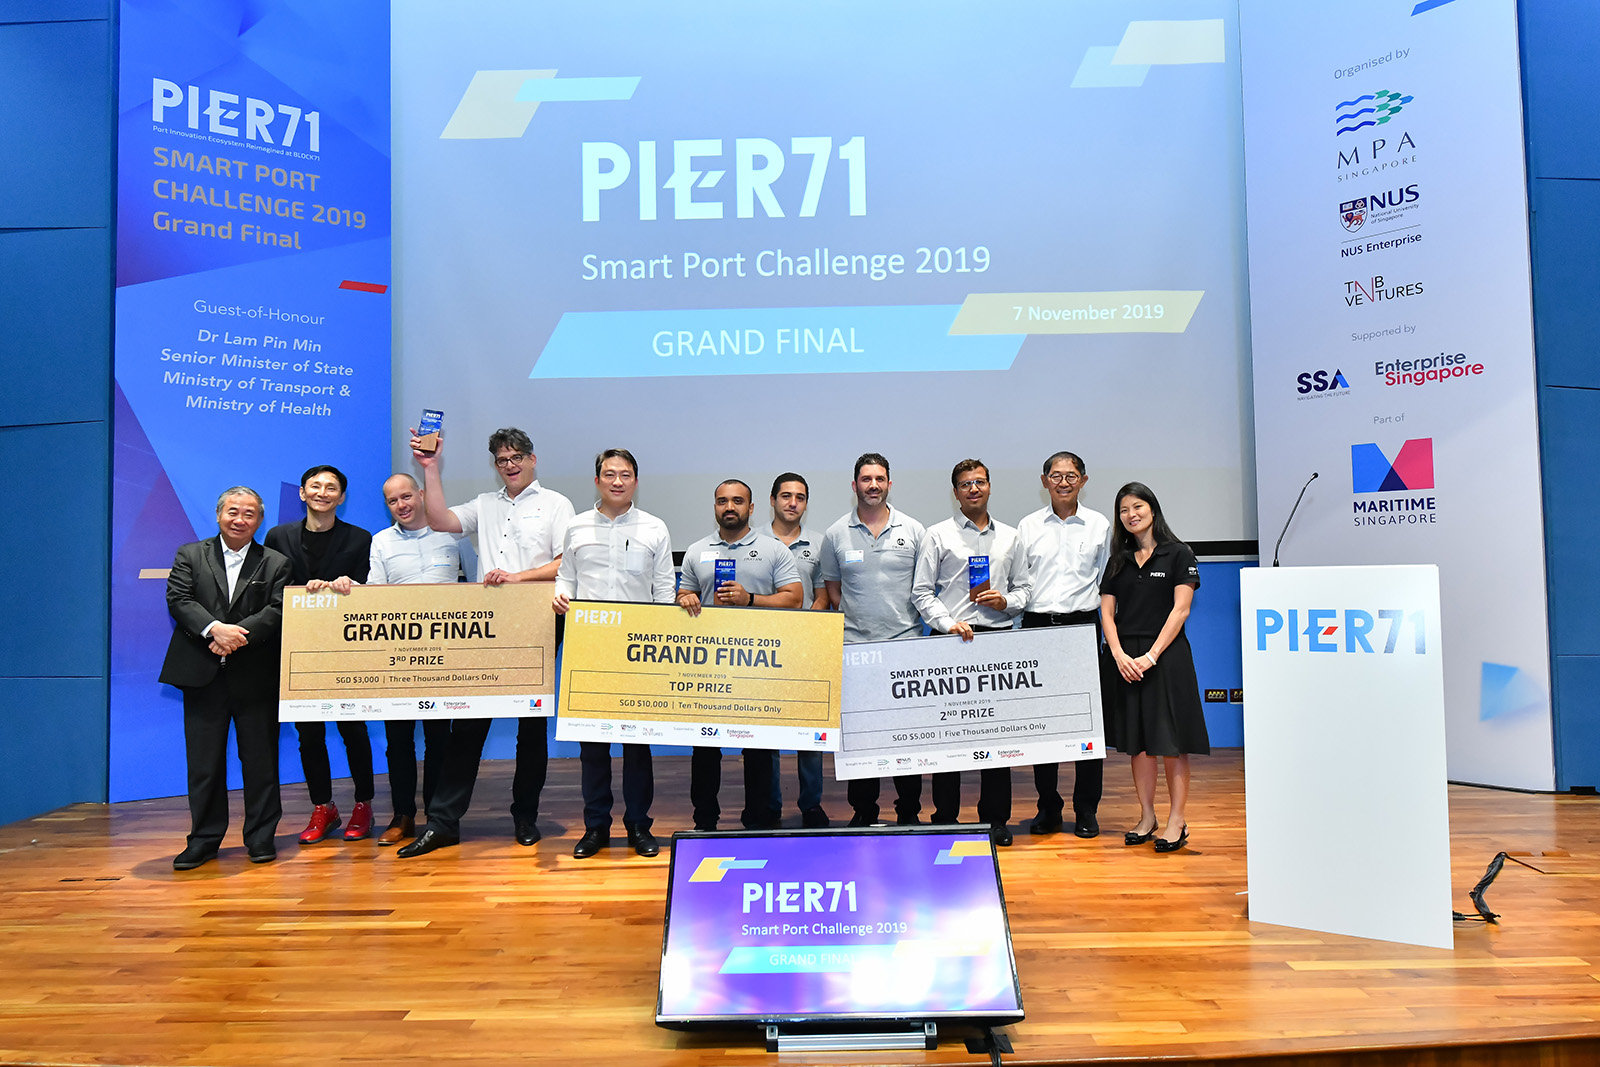 PIER71 Unveils Top Three Start-ups Reimagining the Maritime Industry at the 2019 Smart Port Challenge Grand Final